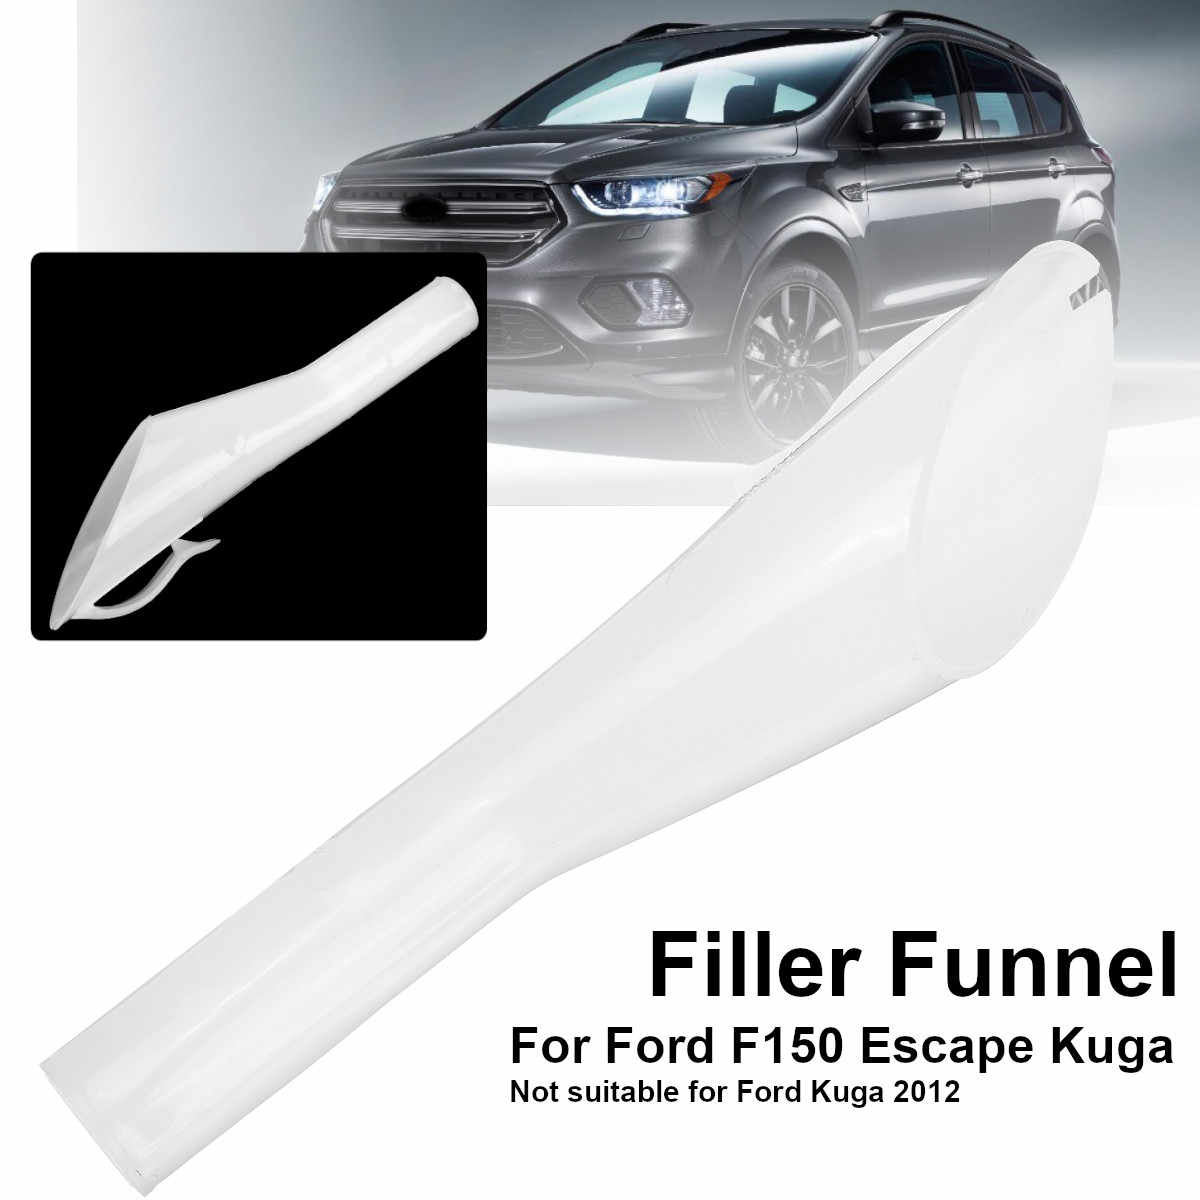 hight resolution of car petrol oil filler funnel fuel refueling tool car fuel filters for ford escape for kuga